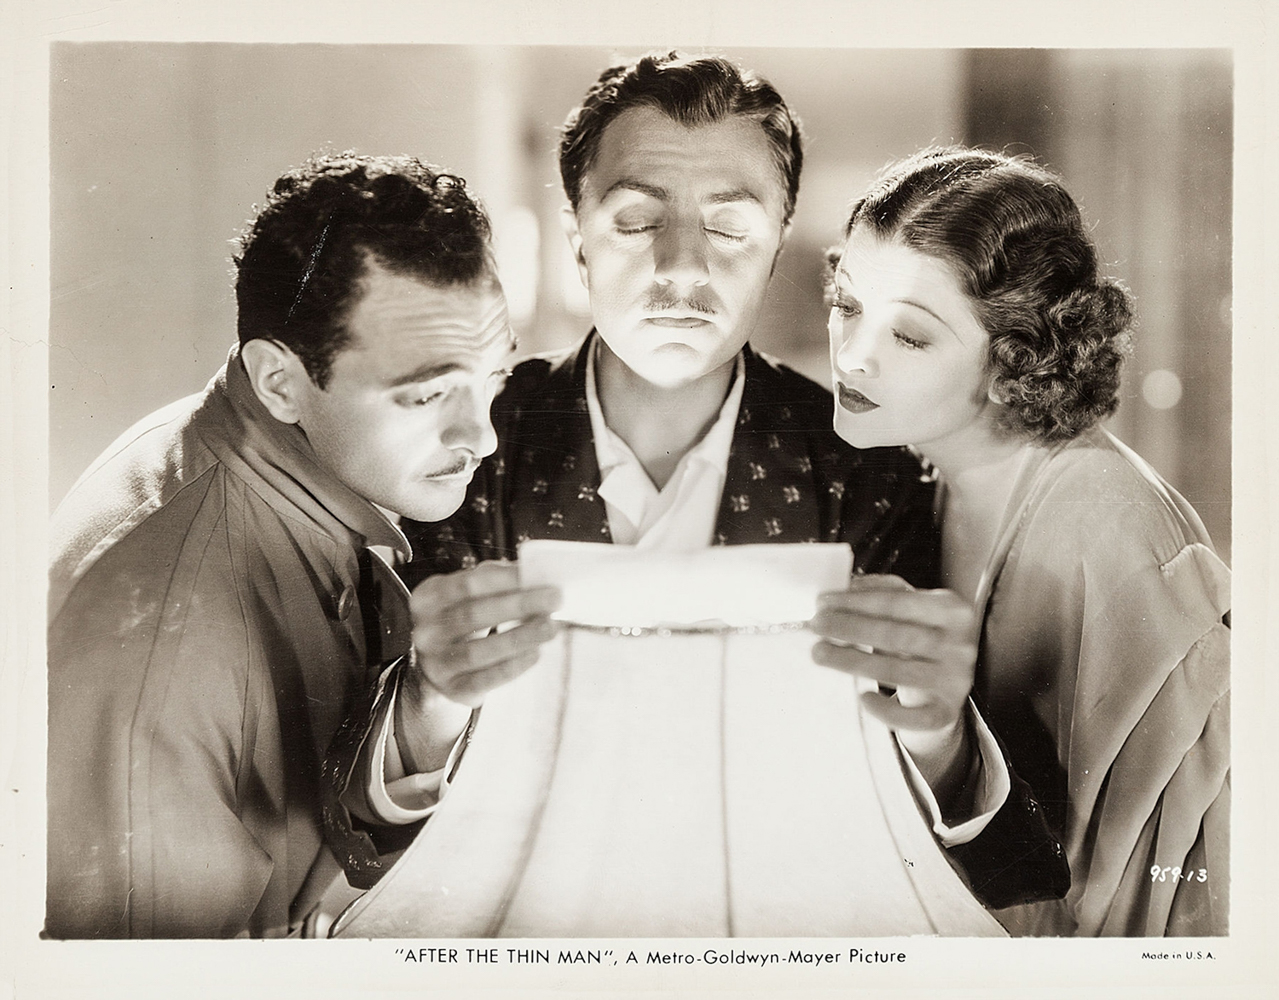 after the thin man 1936 scene still photo 959-13